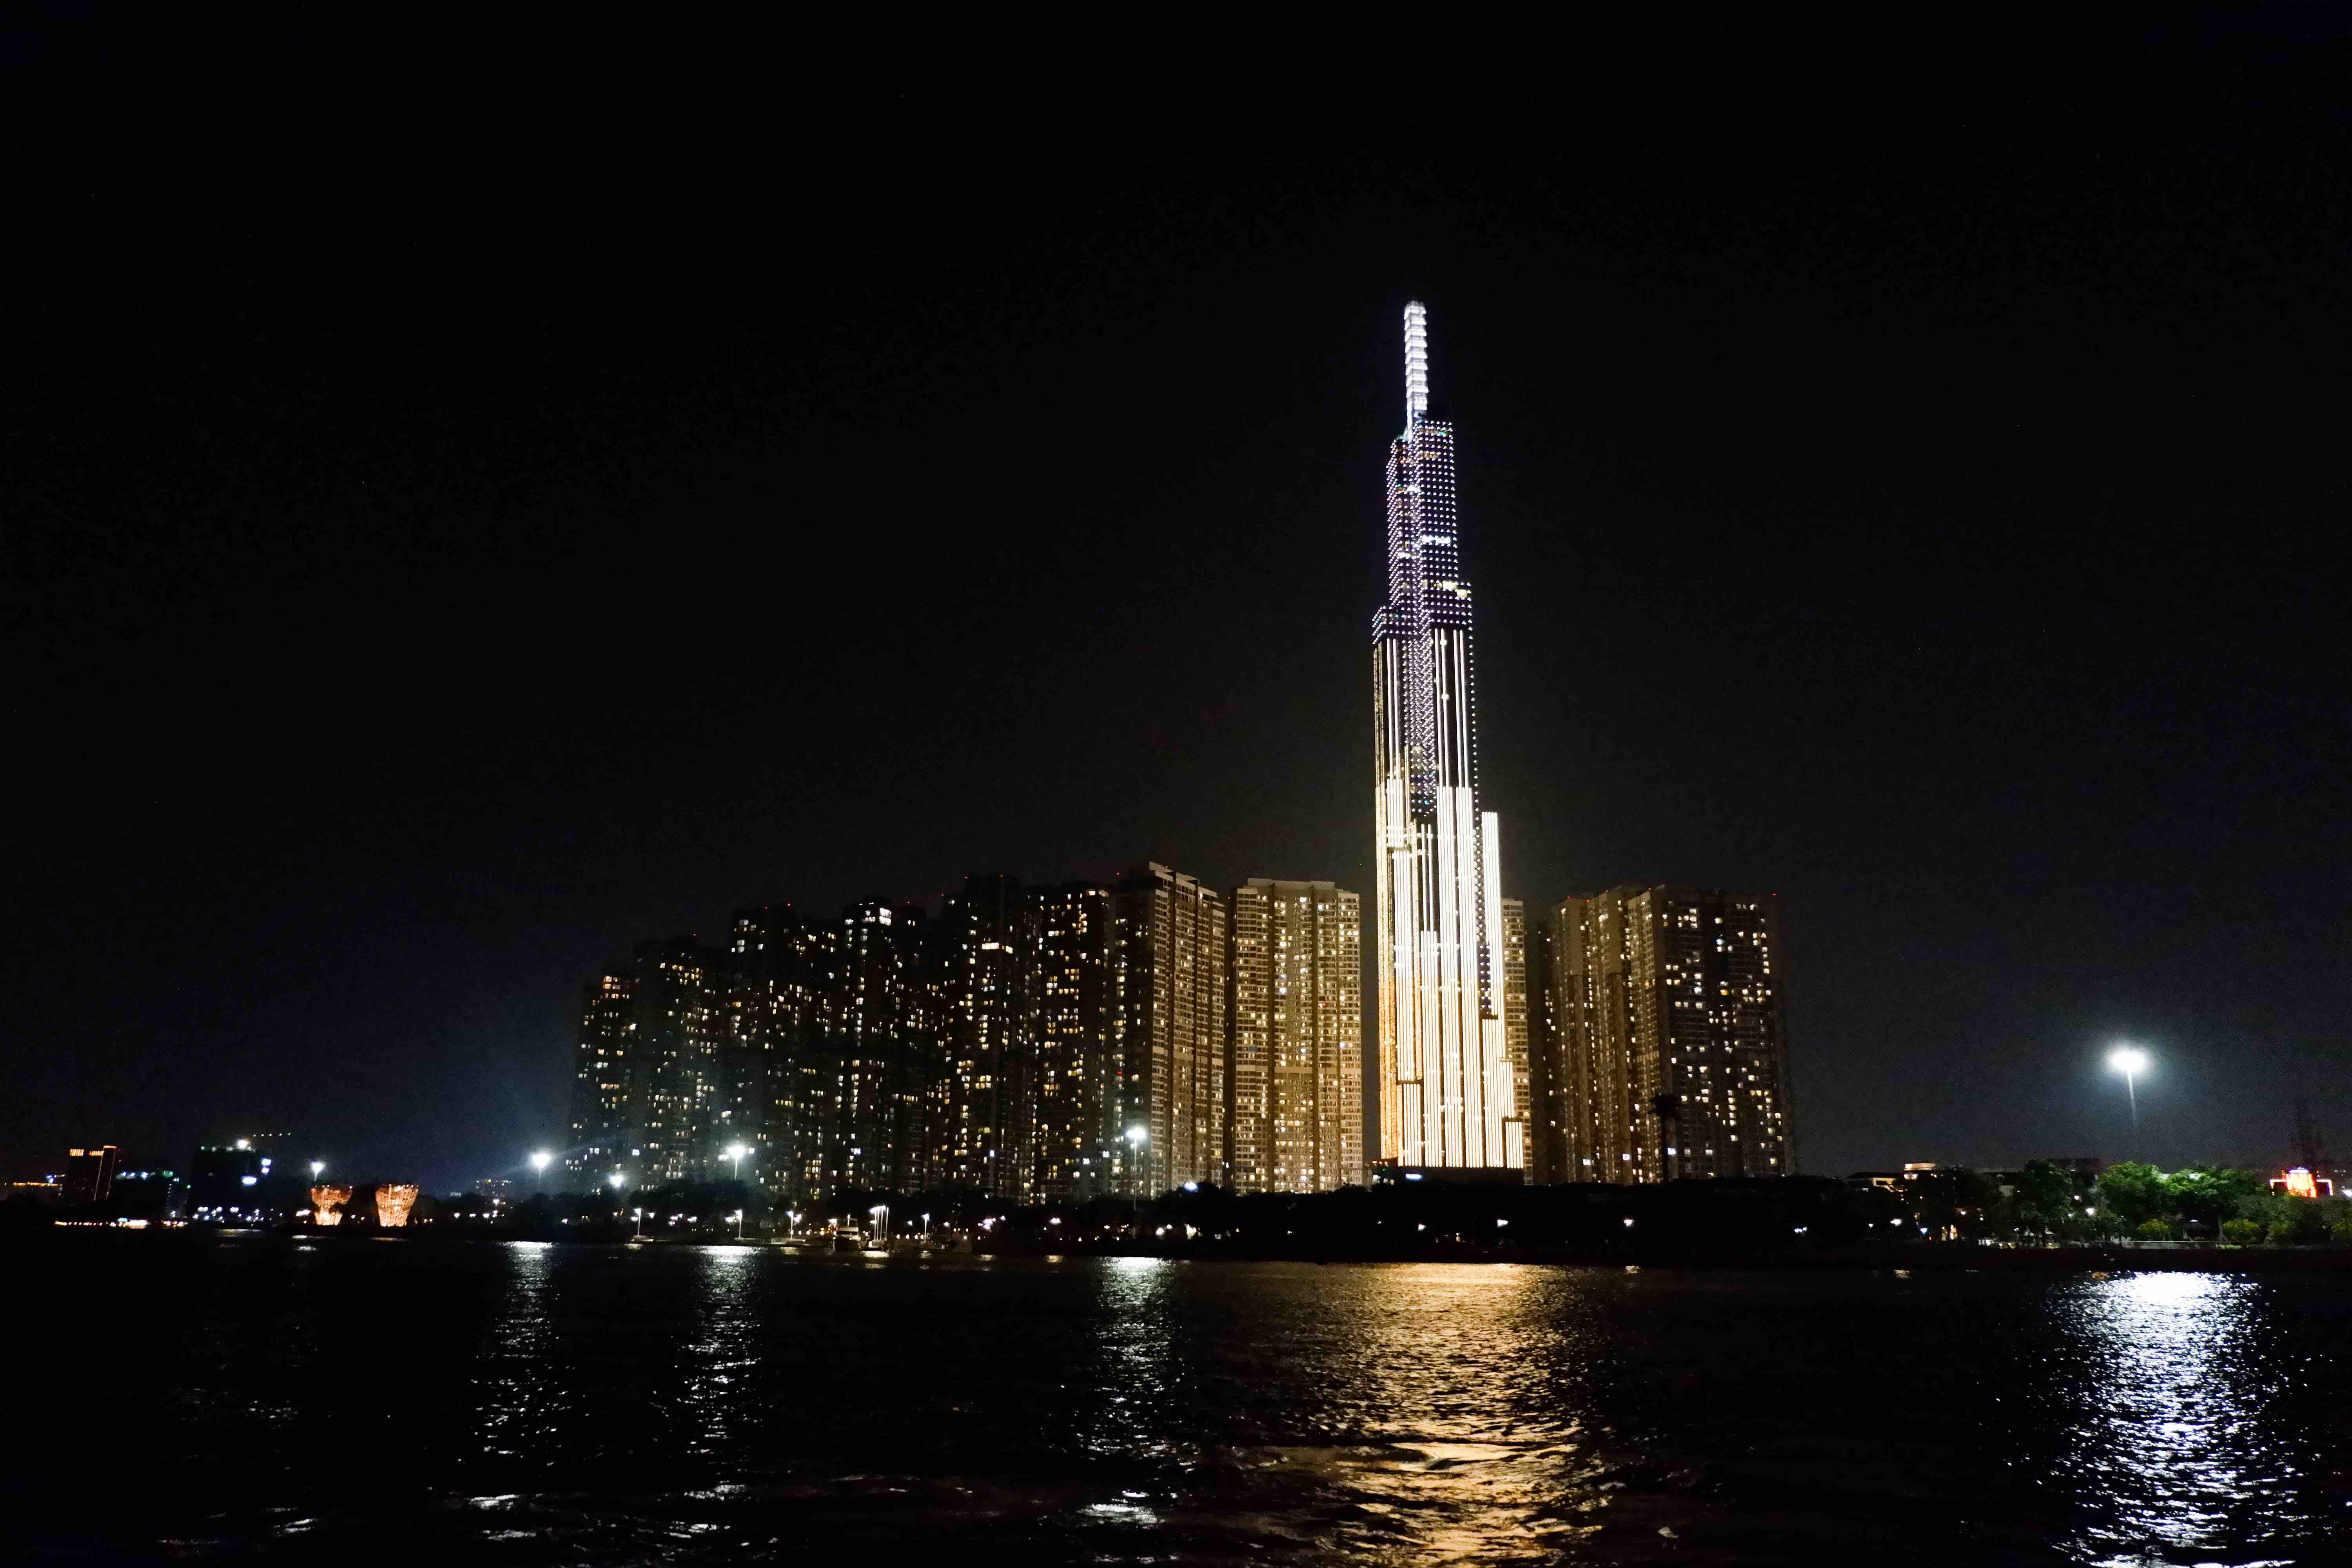 The iconic Landmark 81skyscraper at night from the waterbus view is seen in the photo on March 31, 2021. Photo: Linh To / Tuoi Tre